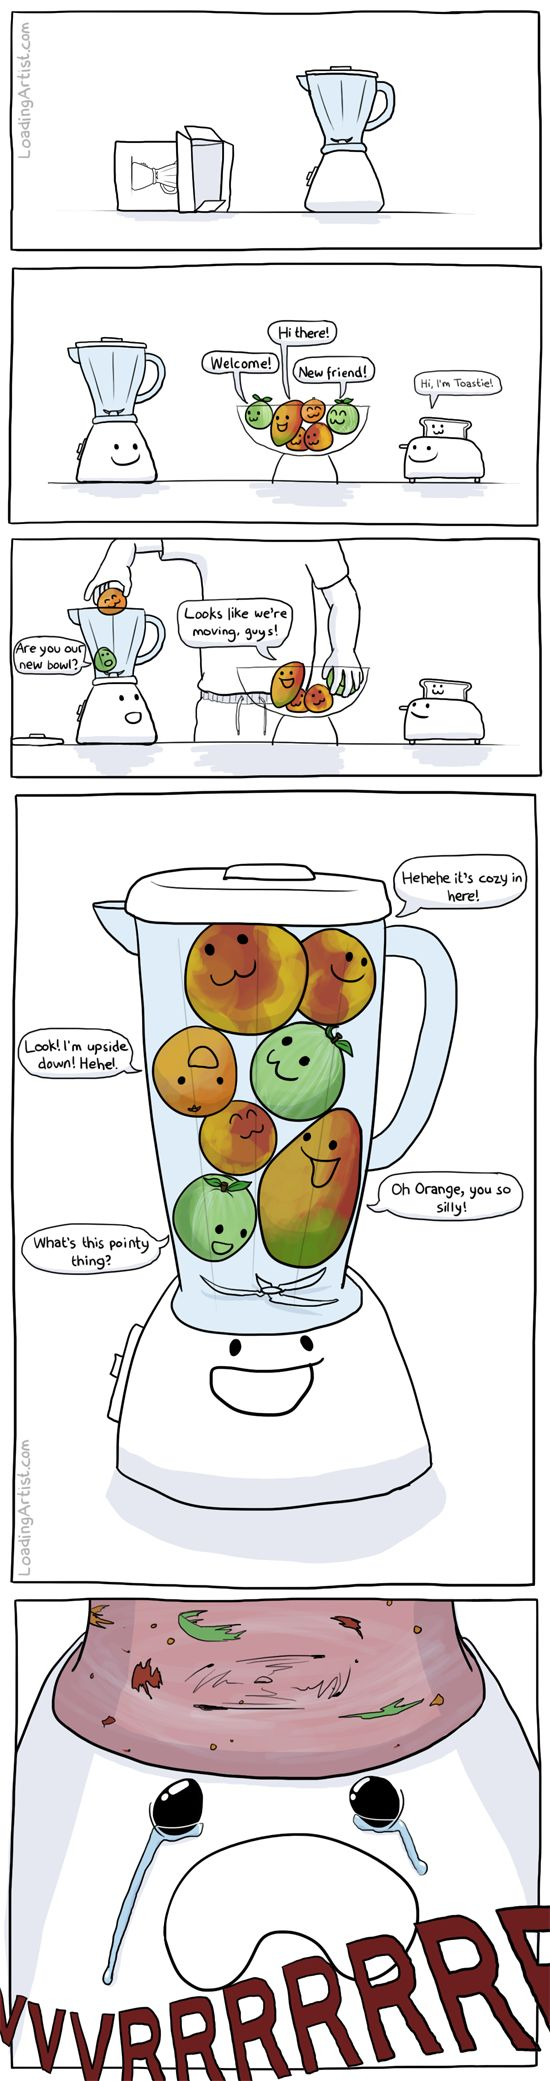 Blender Problems. I will never make a smoothie without thinking of this again! ;(